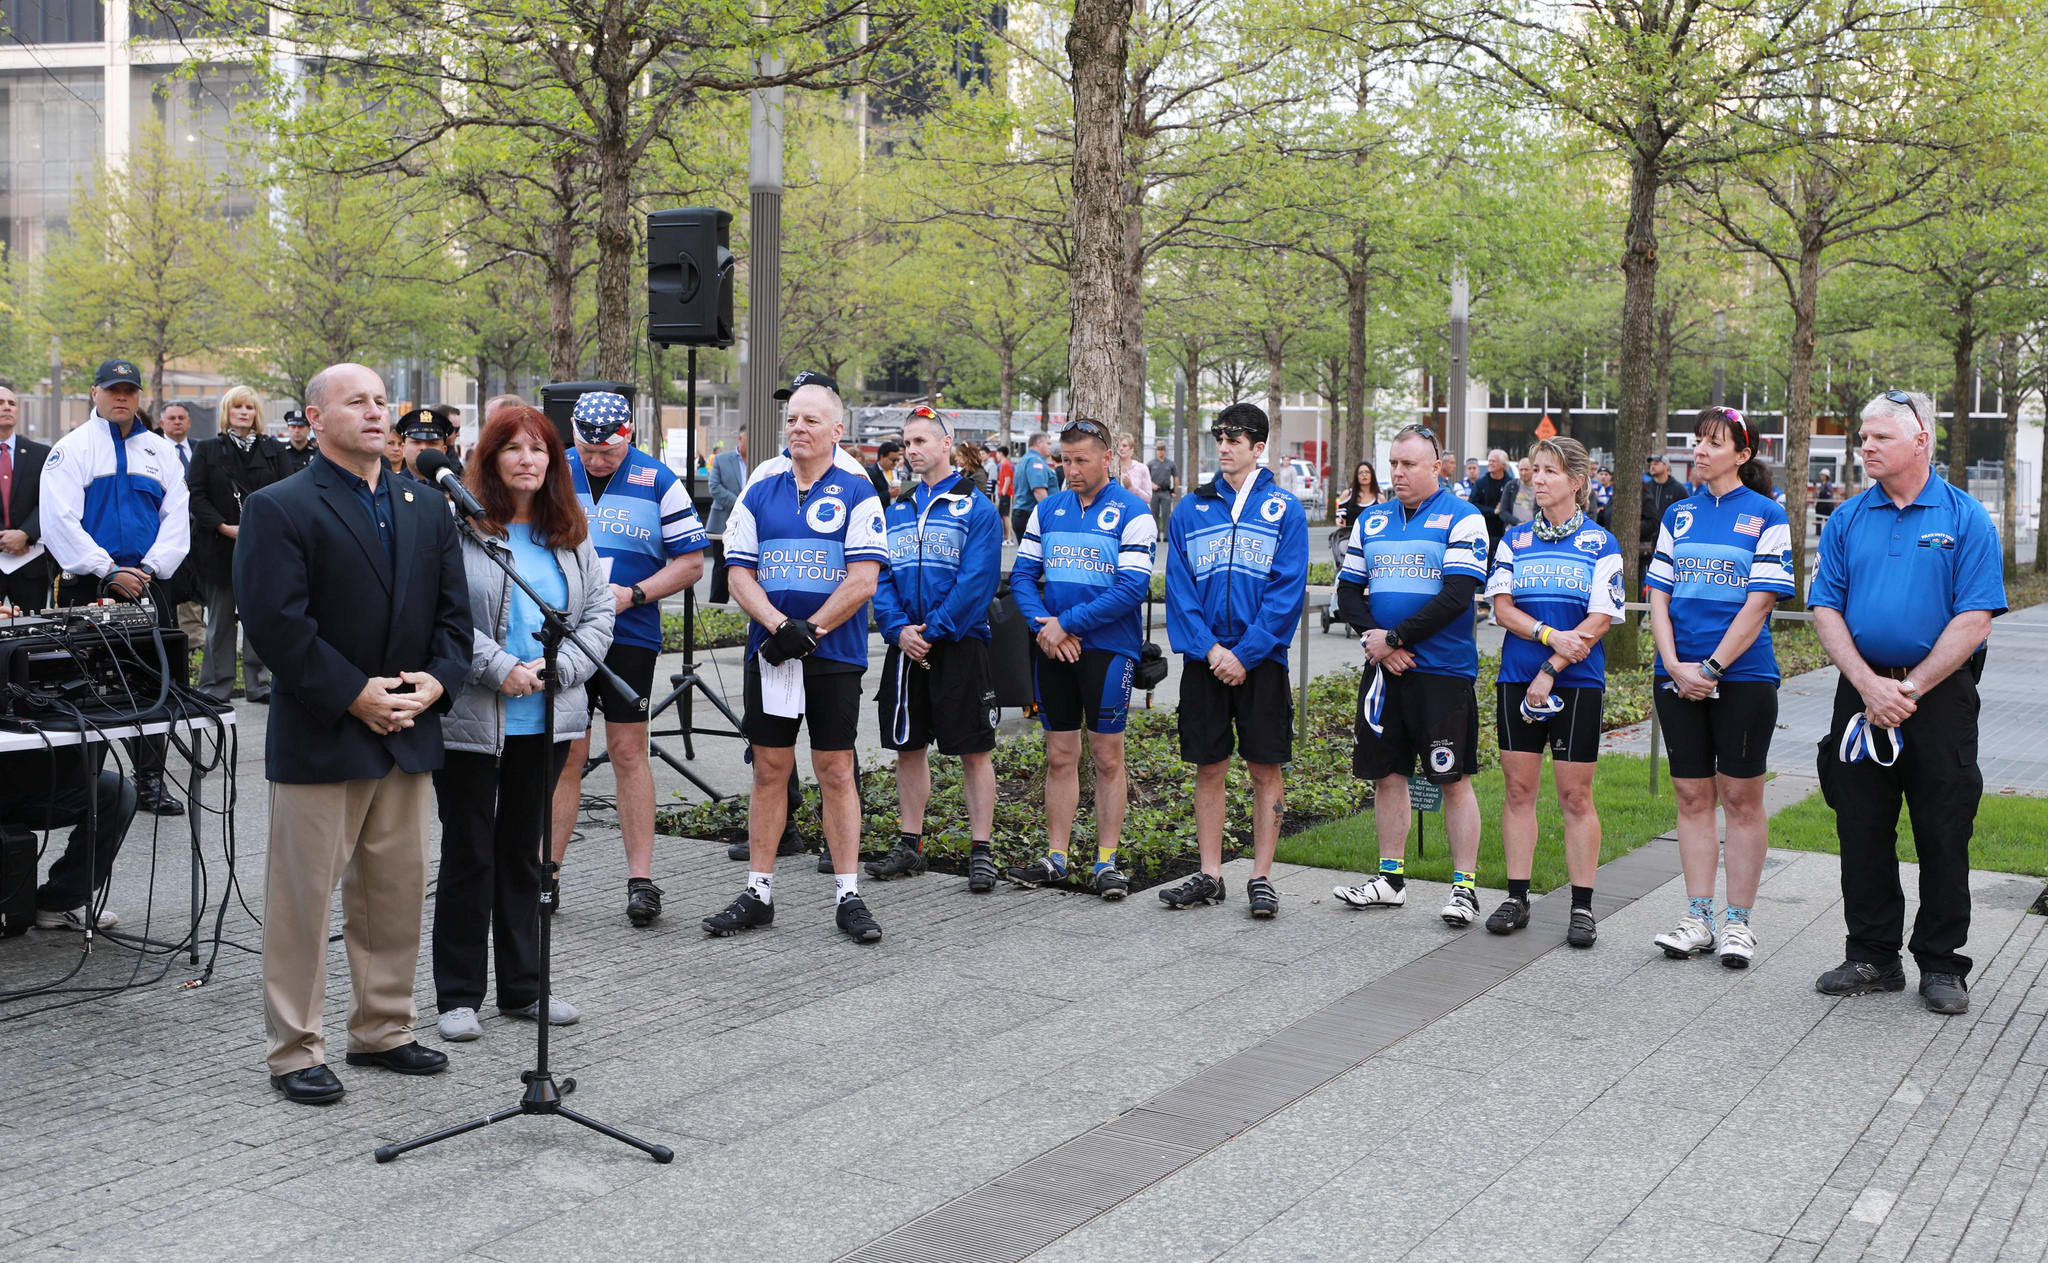 37 Tour Police Unity Tour Bike Ride Pays Tribute To Fallen Police Officers